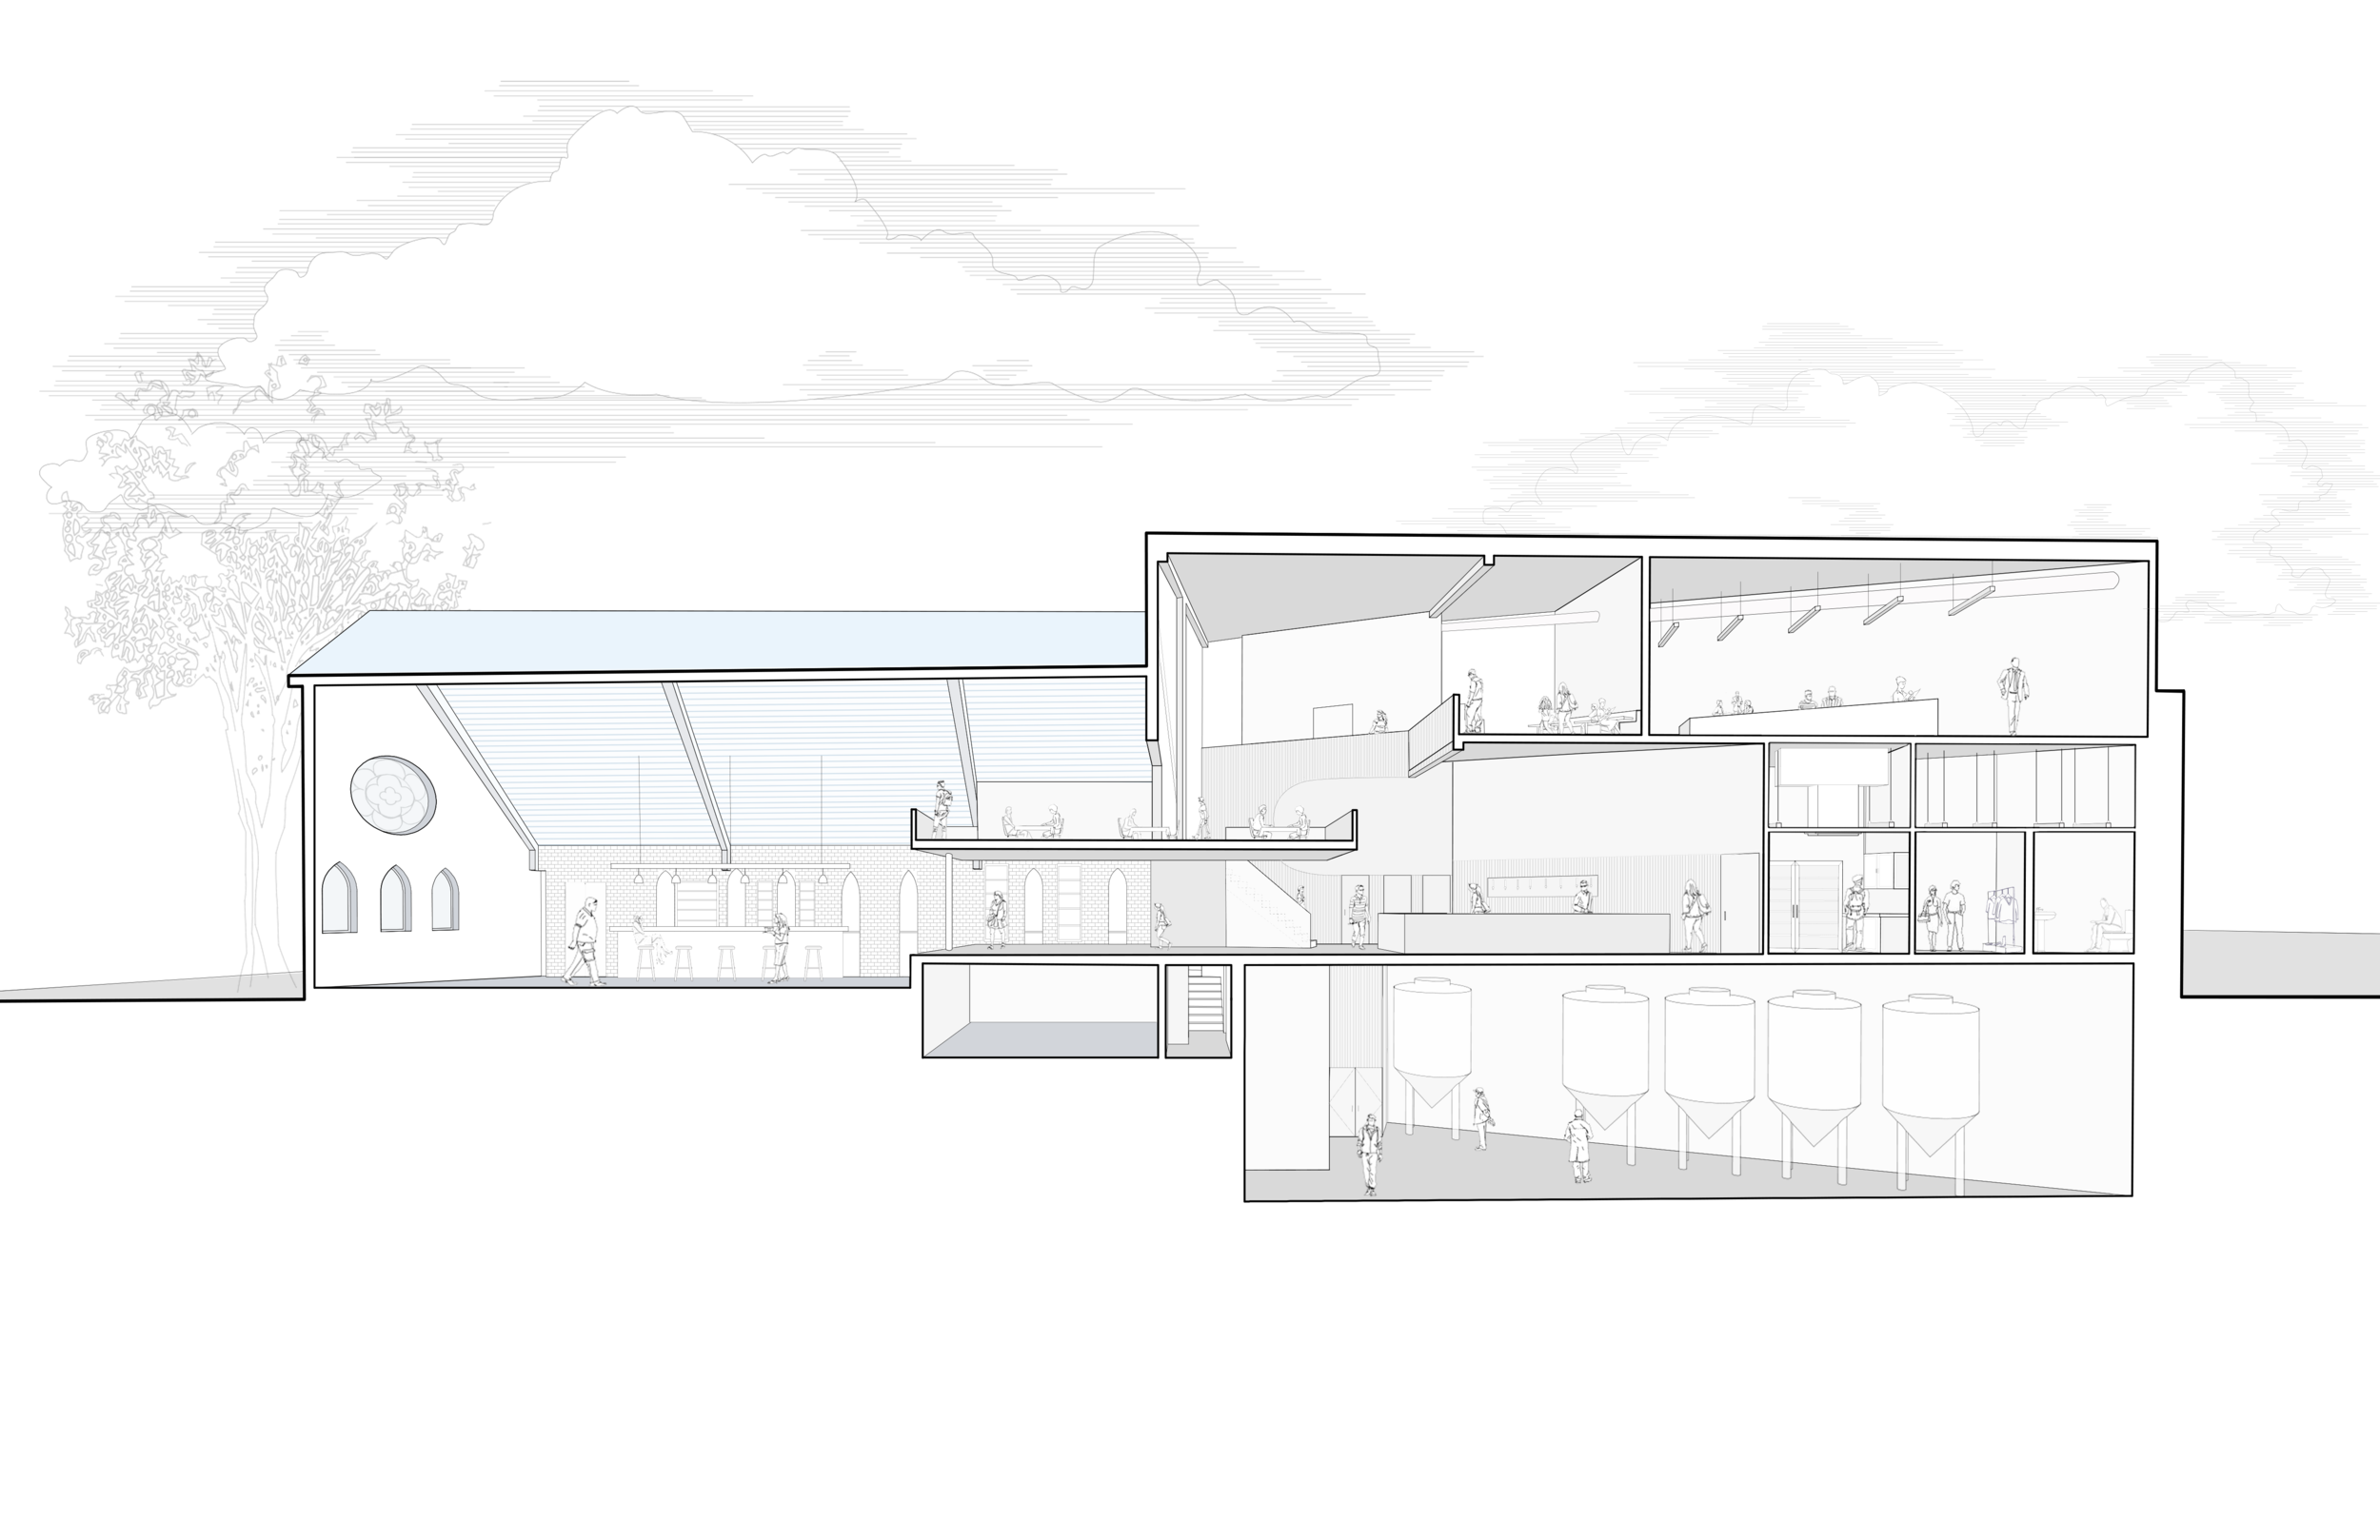 An architectural drawing